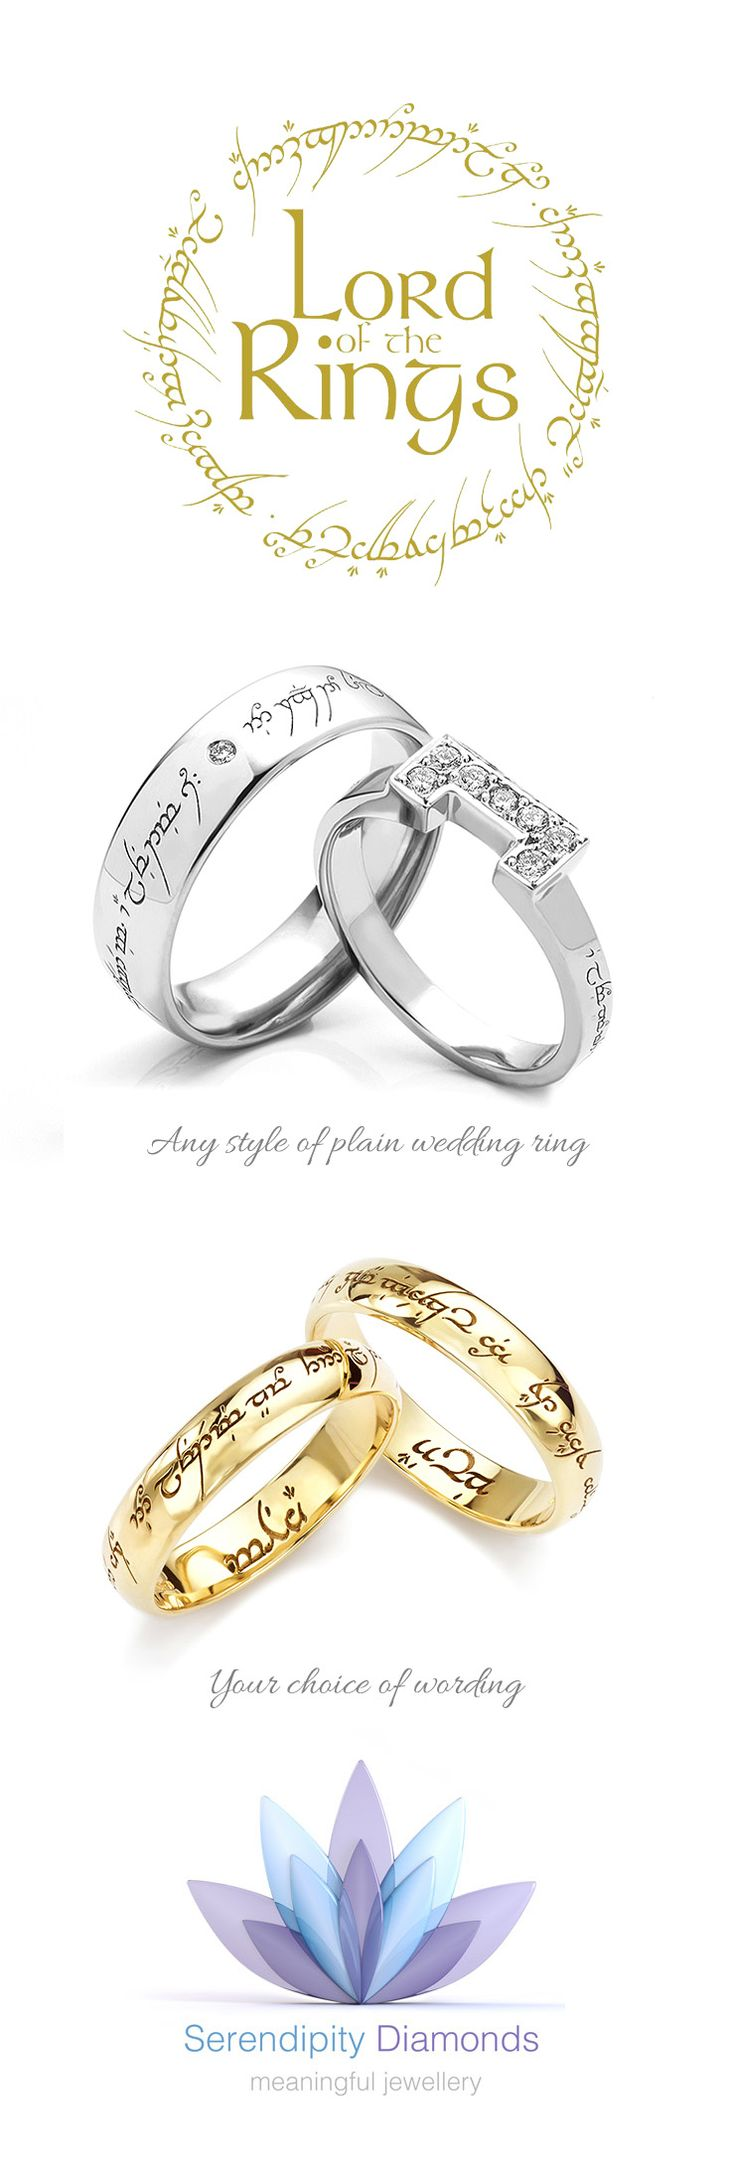 img meaningful matter more rings are engraving your what to whatever on the wedding be get that of happy no is make going you both engraved sure with